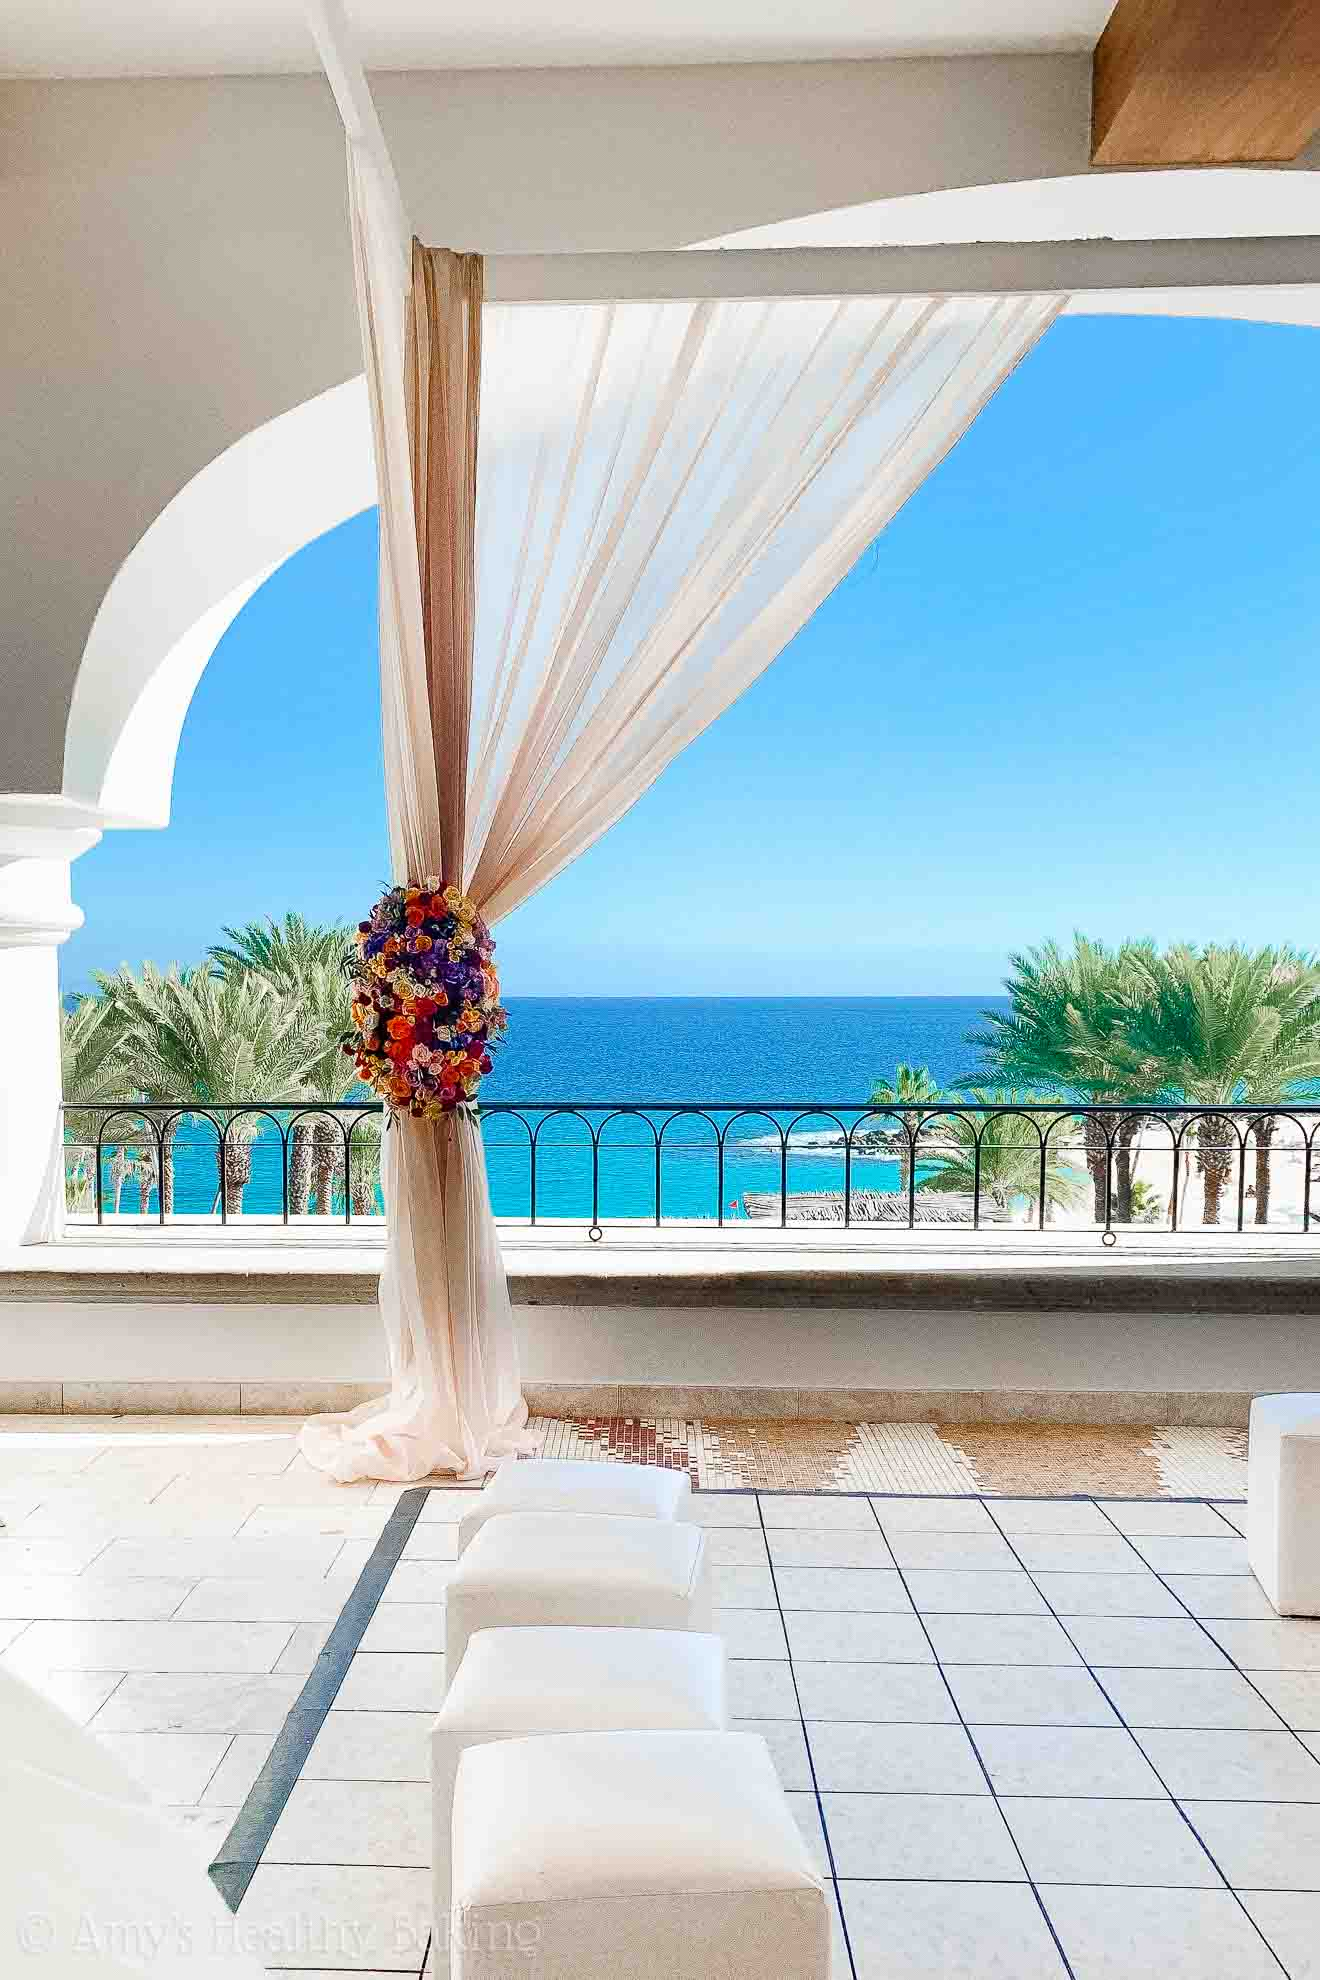 Indian wedding canopy at the Hilton beachfront resort in Cabo San Lucas